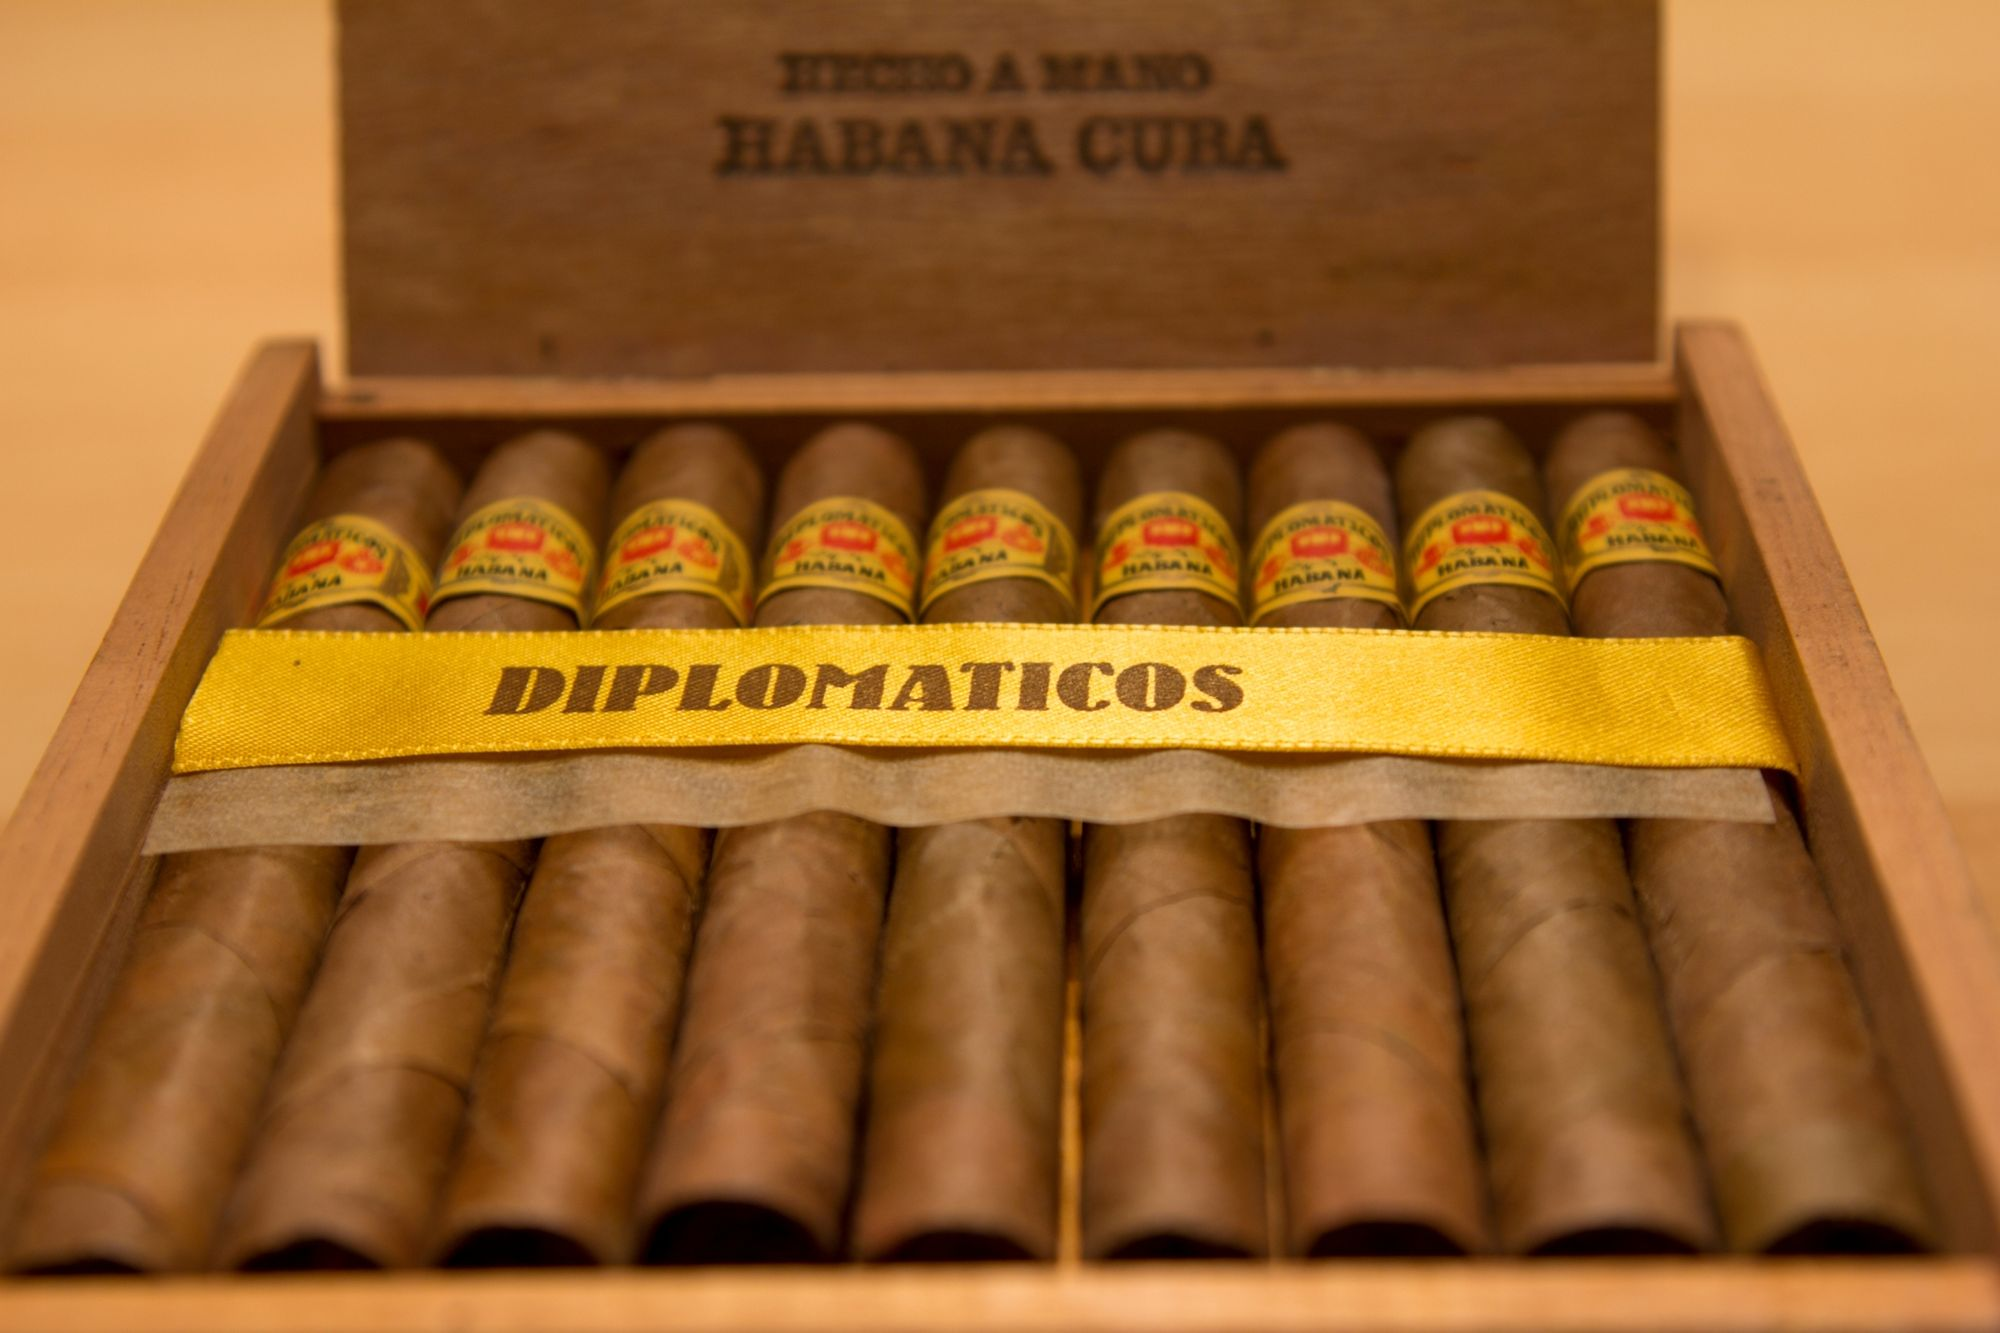 Diplomaticos No. 7 from the 70s